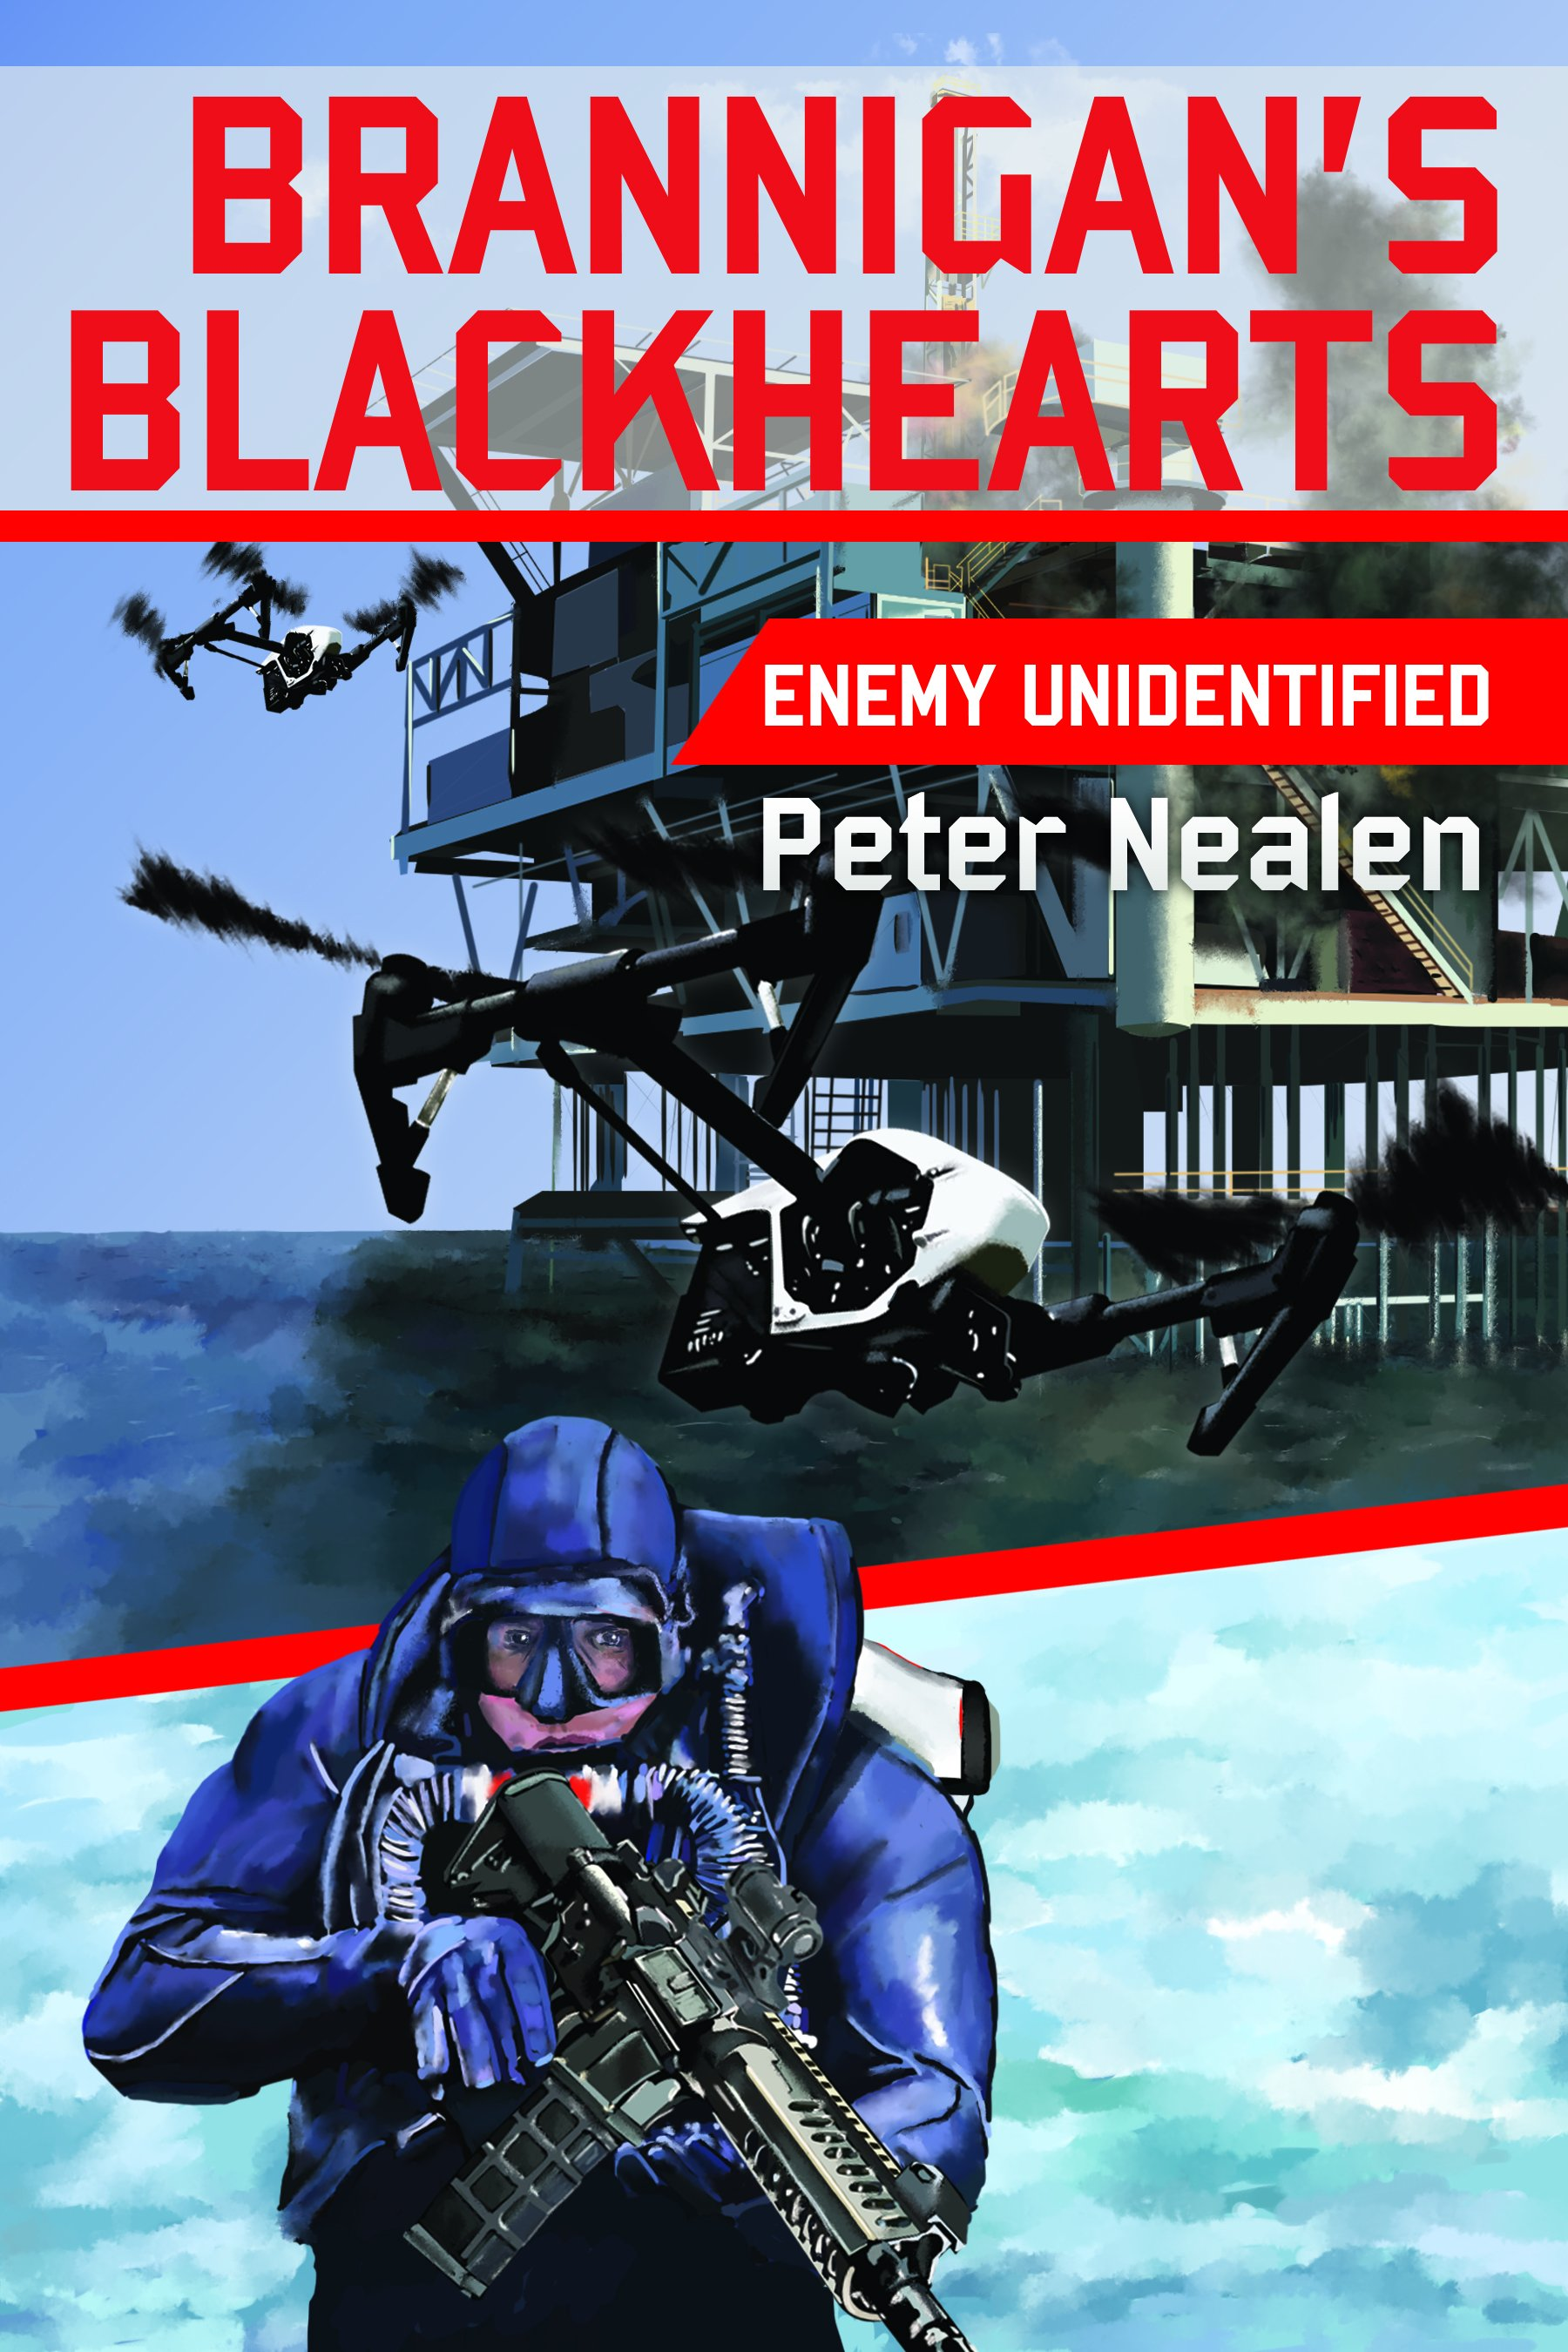 Enemy Unidentified by Peter Nealen